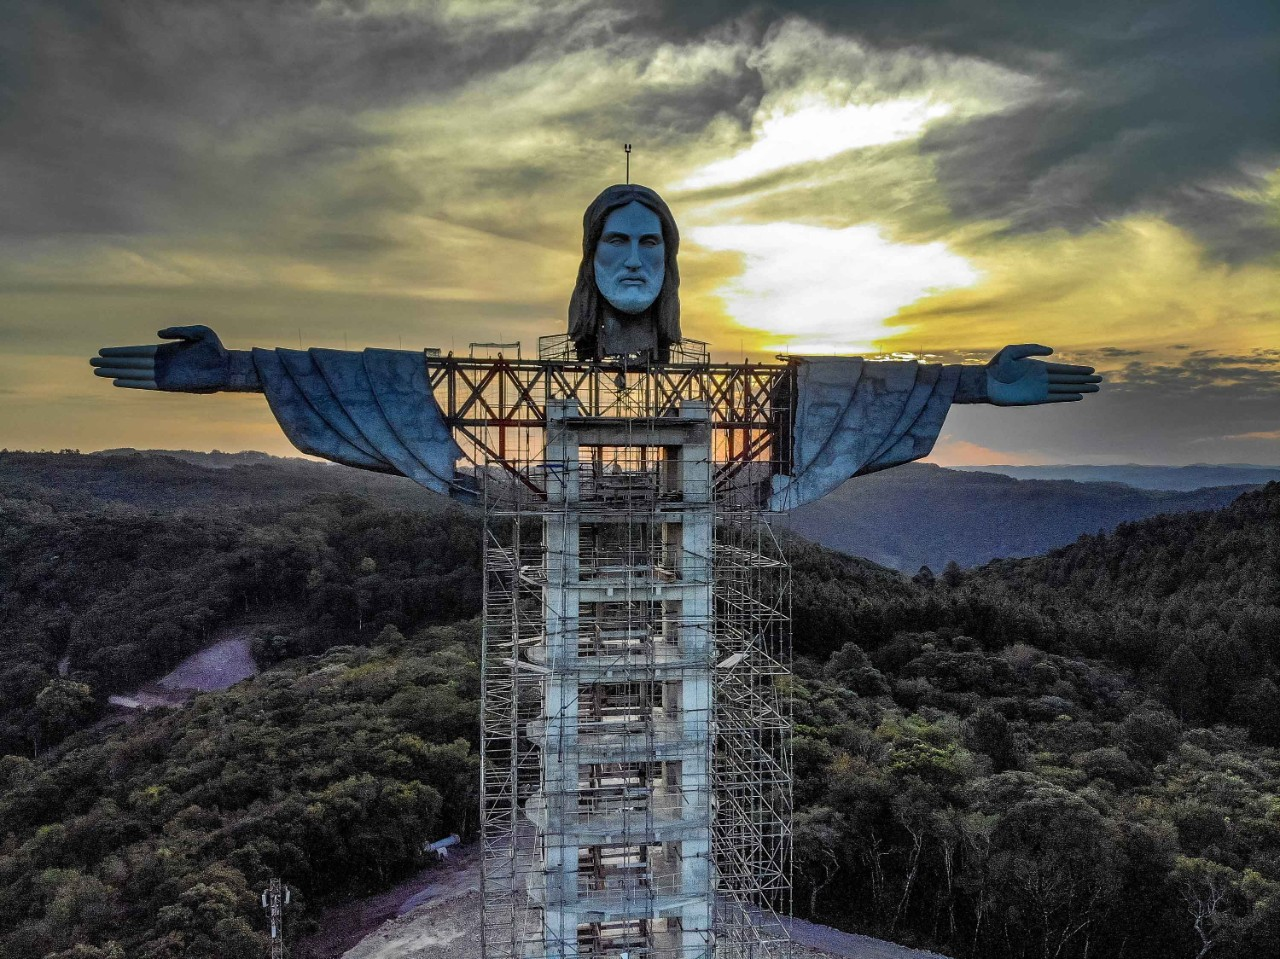 Brazil is building a new statue of Jesus -- and it's going to be bigger than Rio's